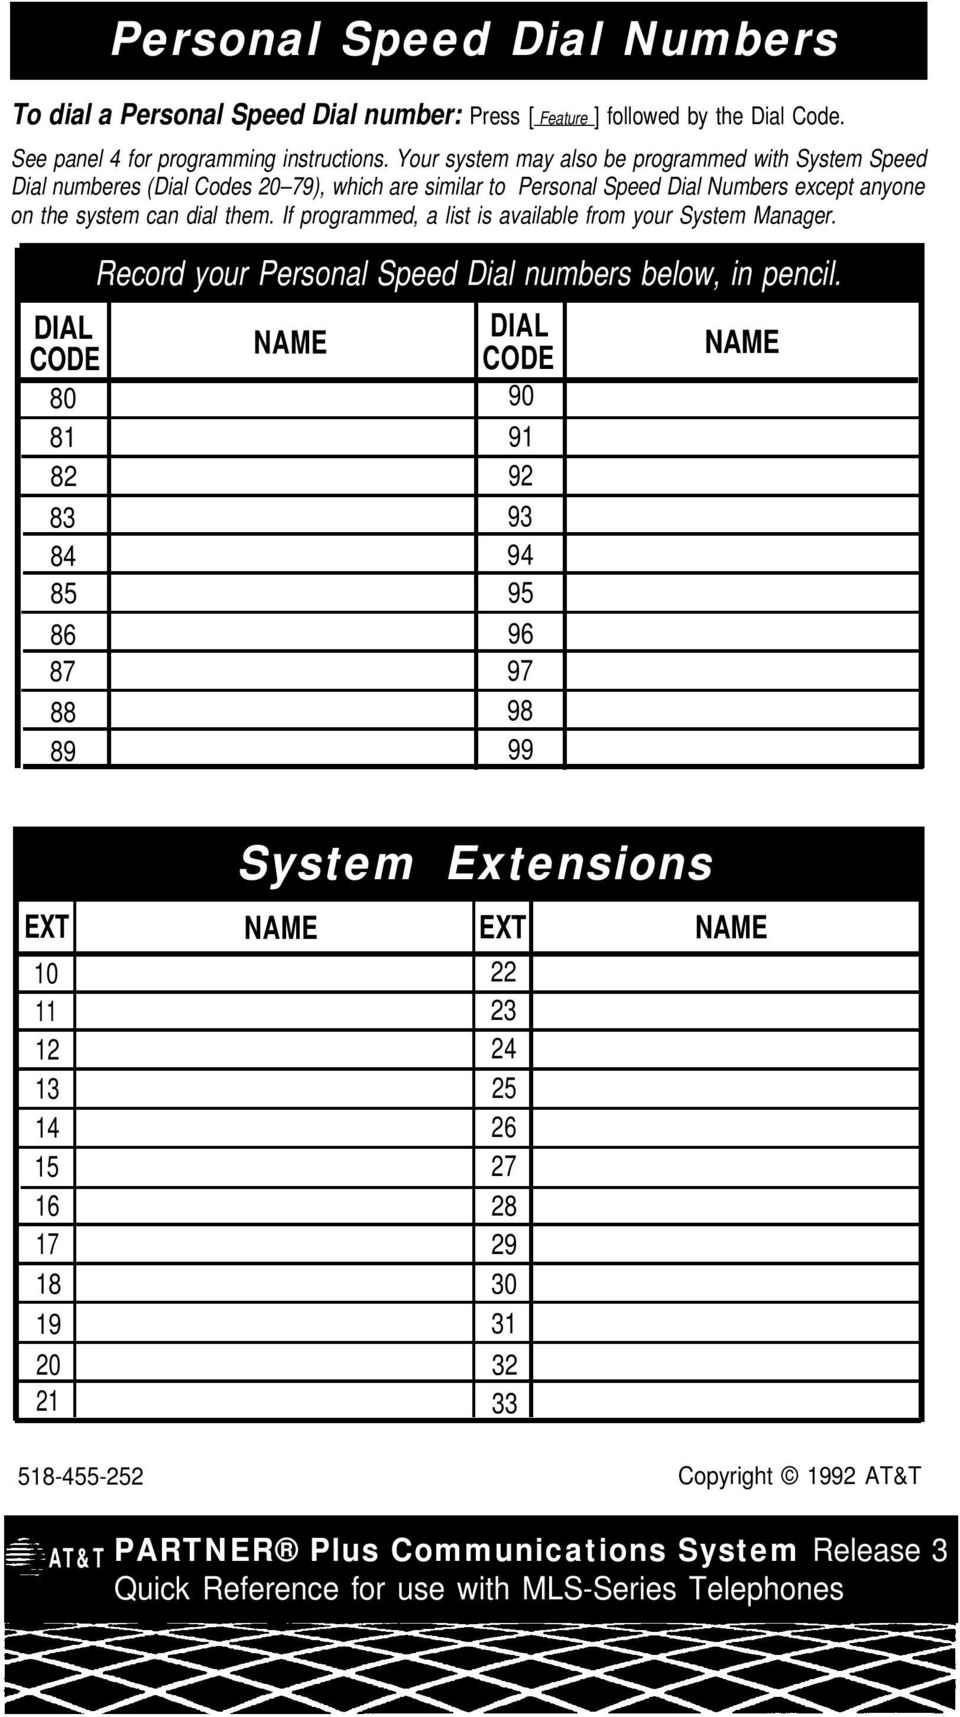 If programmed, a list is available from your System Manager. Record your Personal Speed Dial numbers below, in pencil.